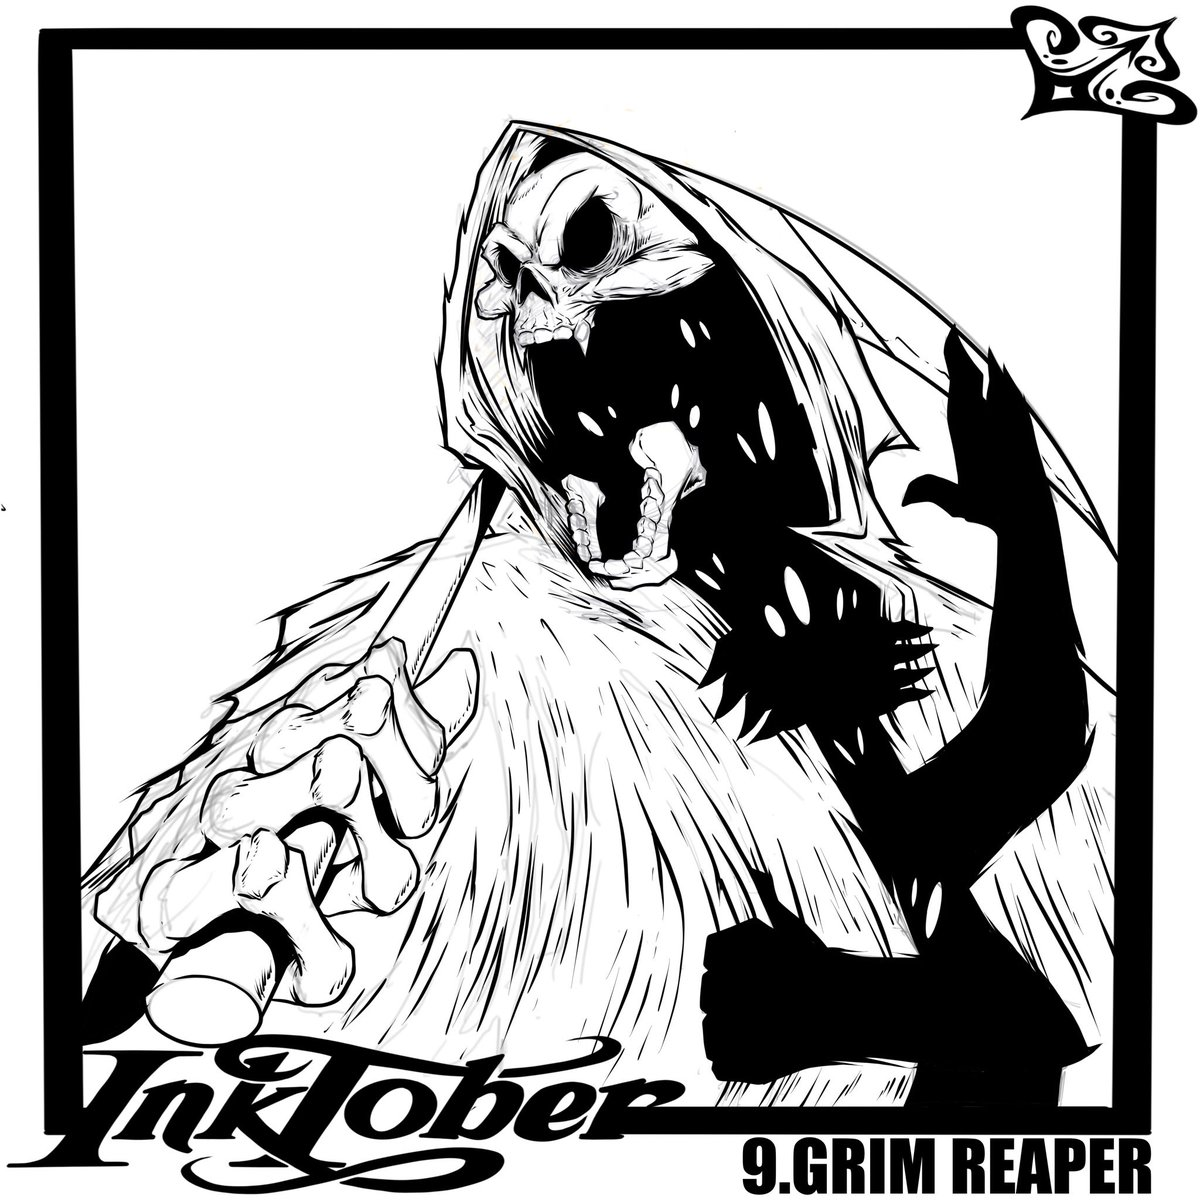 RT @DunMpa: #Inktoberday9 #grimreaper #grimreapertattoo #blackartist https://t.co/xqUZGw5ALH